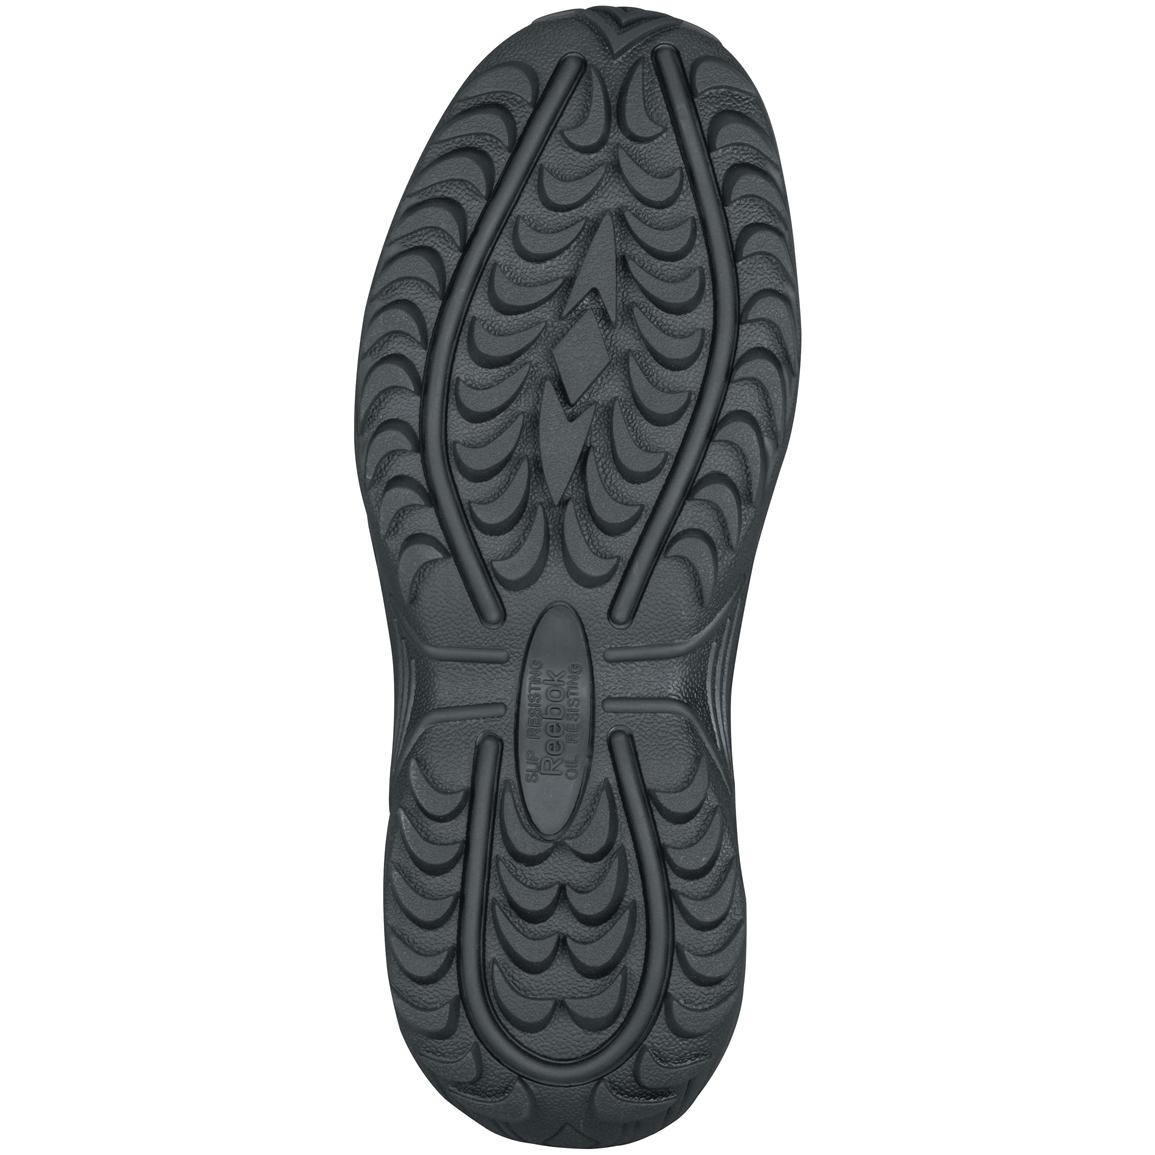 Mountain Trail rubber outsole with aggressive tread for traction